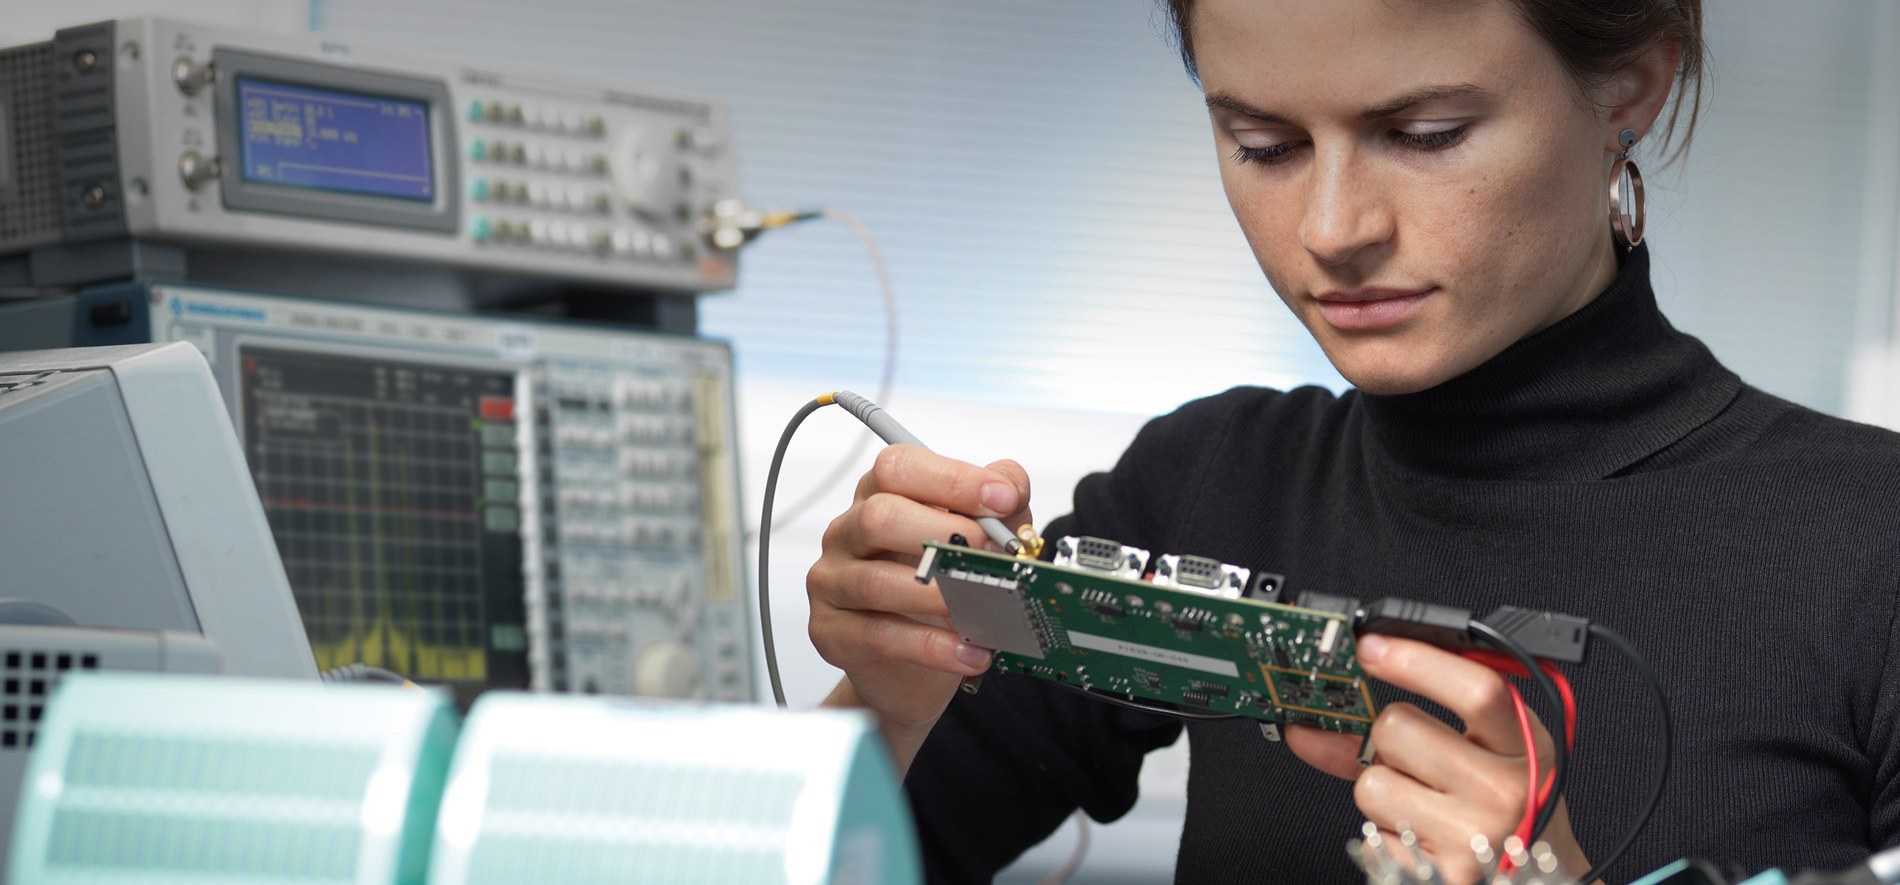 Electronics Asics Cambridge Consultants Integrated Analog And Digital Circuits Systems Designing